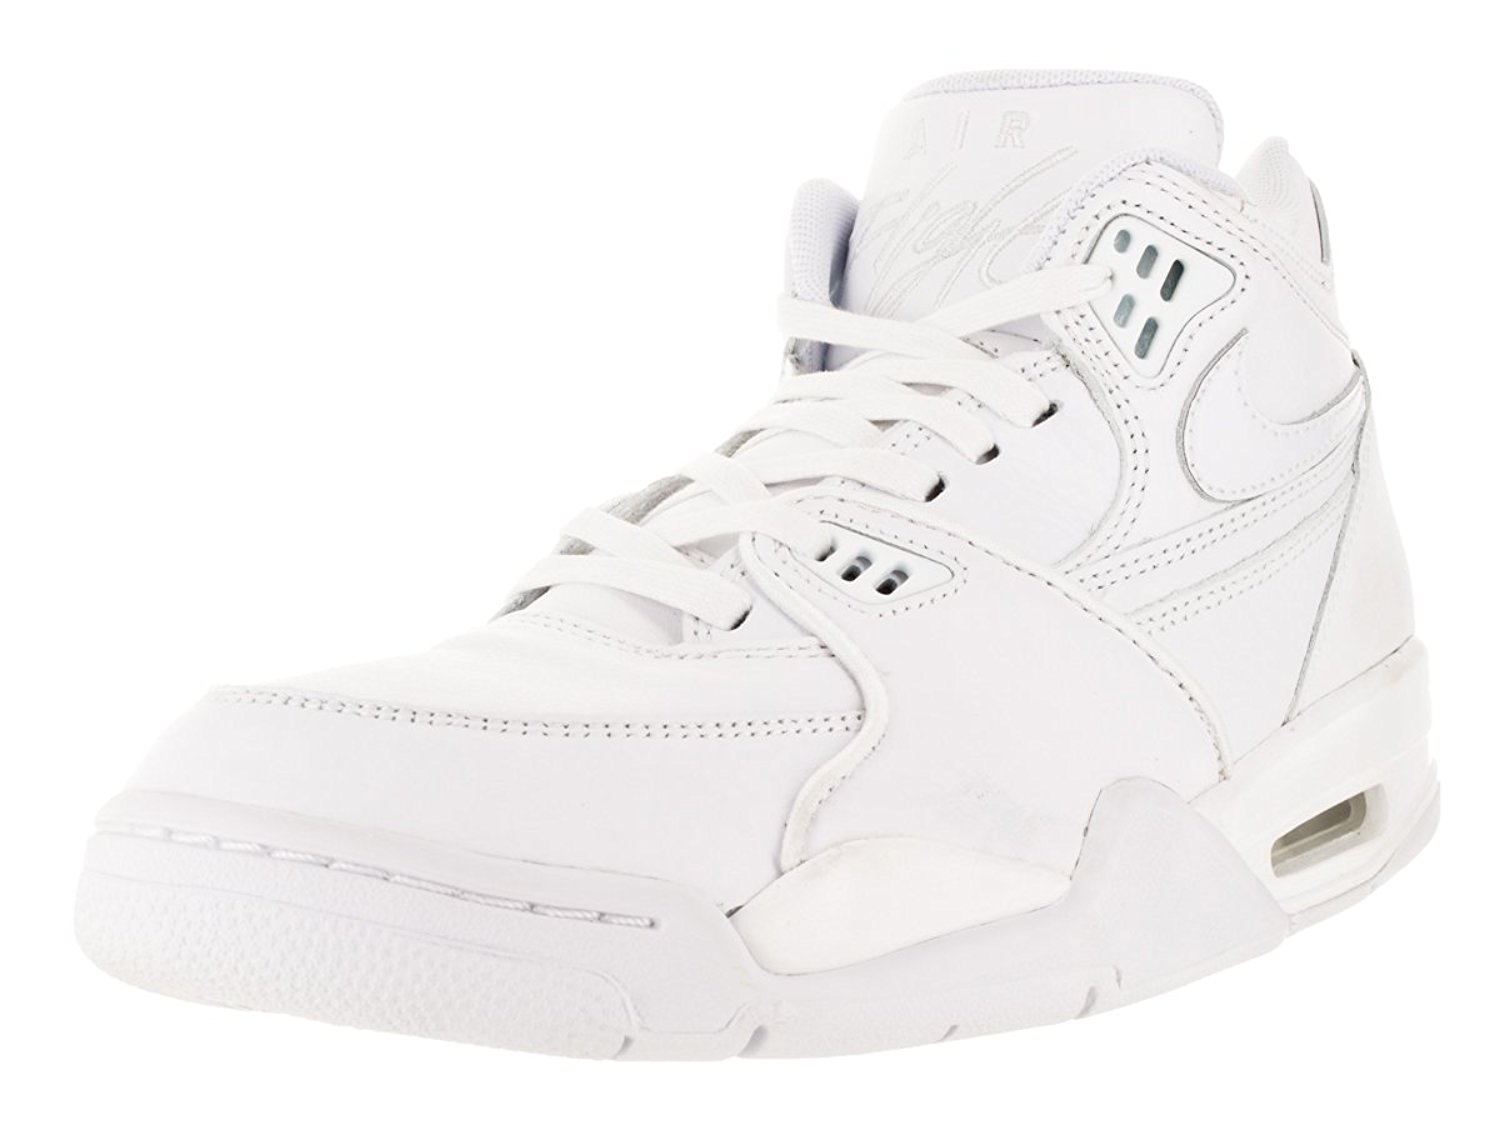 new product 5b5b2 a6f56 Get Quotations · Nike Men s Air Flight 89 Le Qs Basketball Shoe